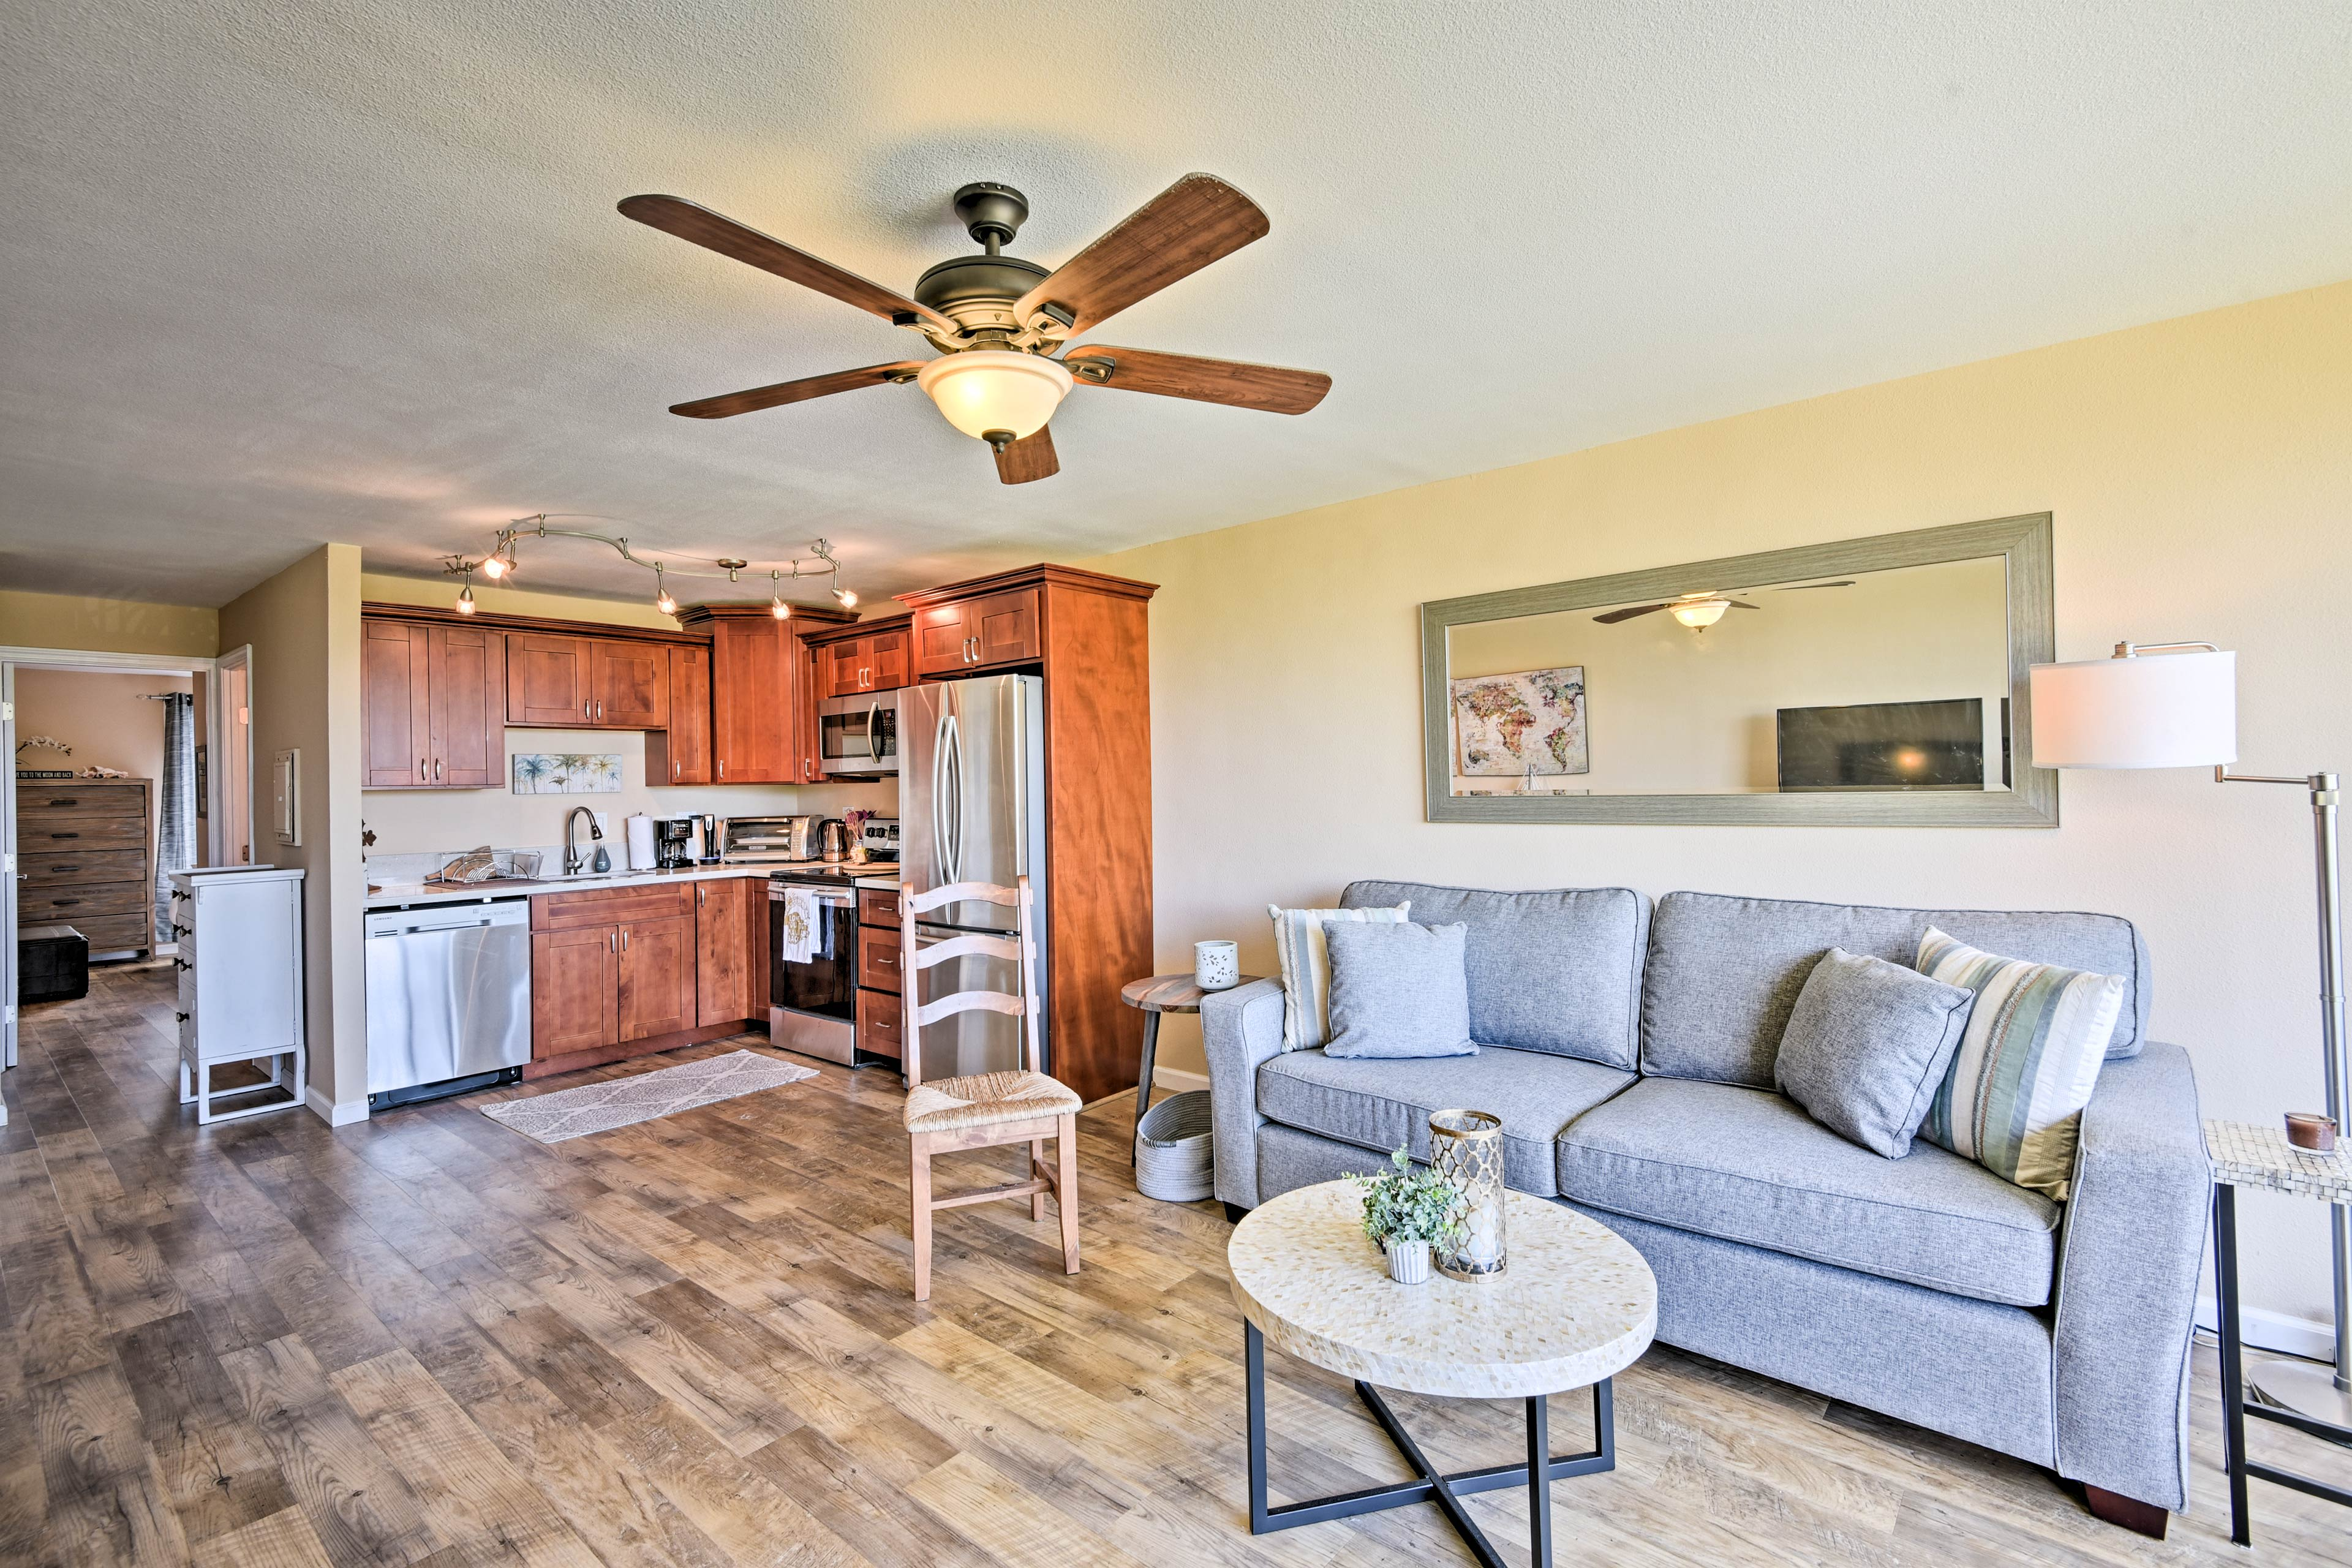 The tastefully appointed interior features 1 bedroom and 1 bathroom.